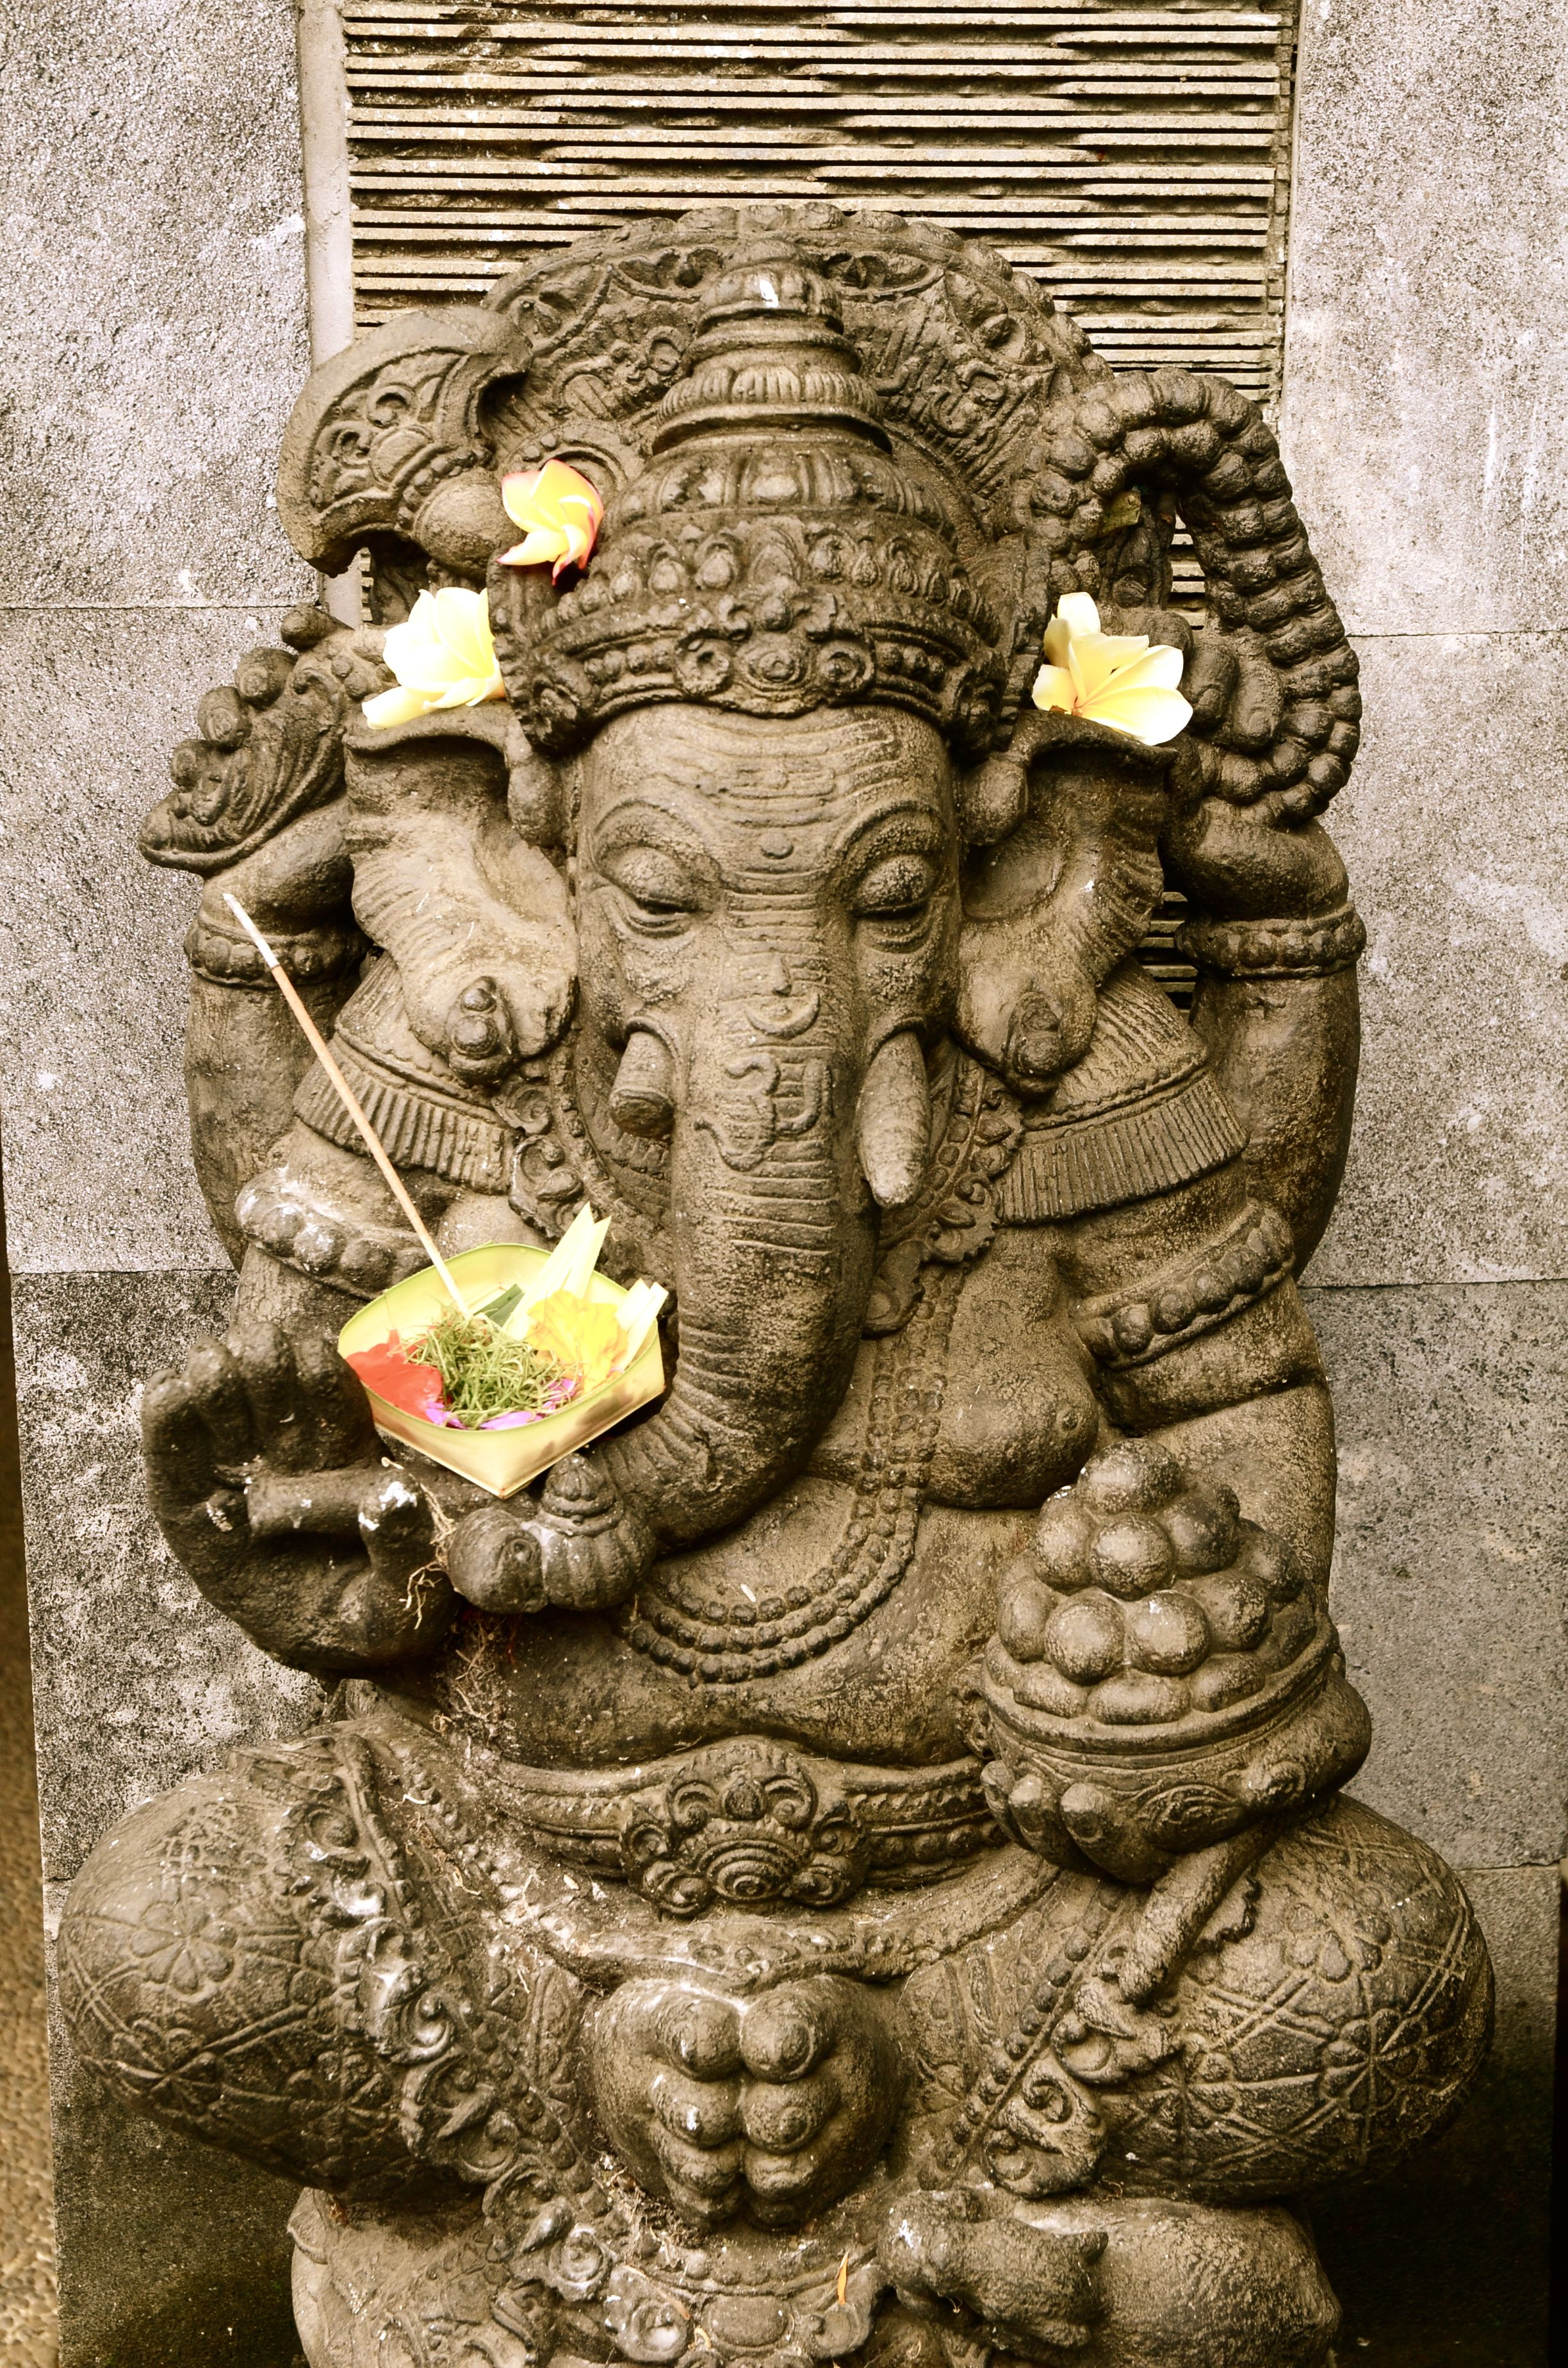 Ganesha the most popular God of the Hindus | India in 2019 ...